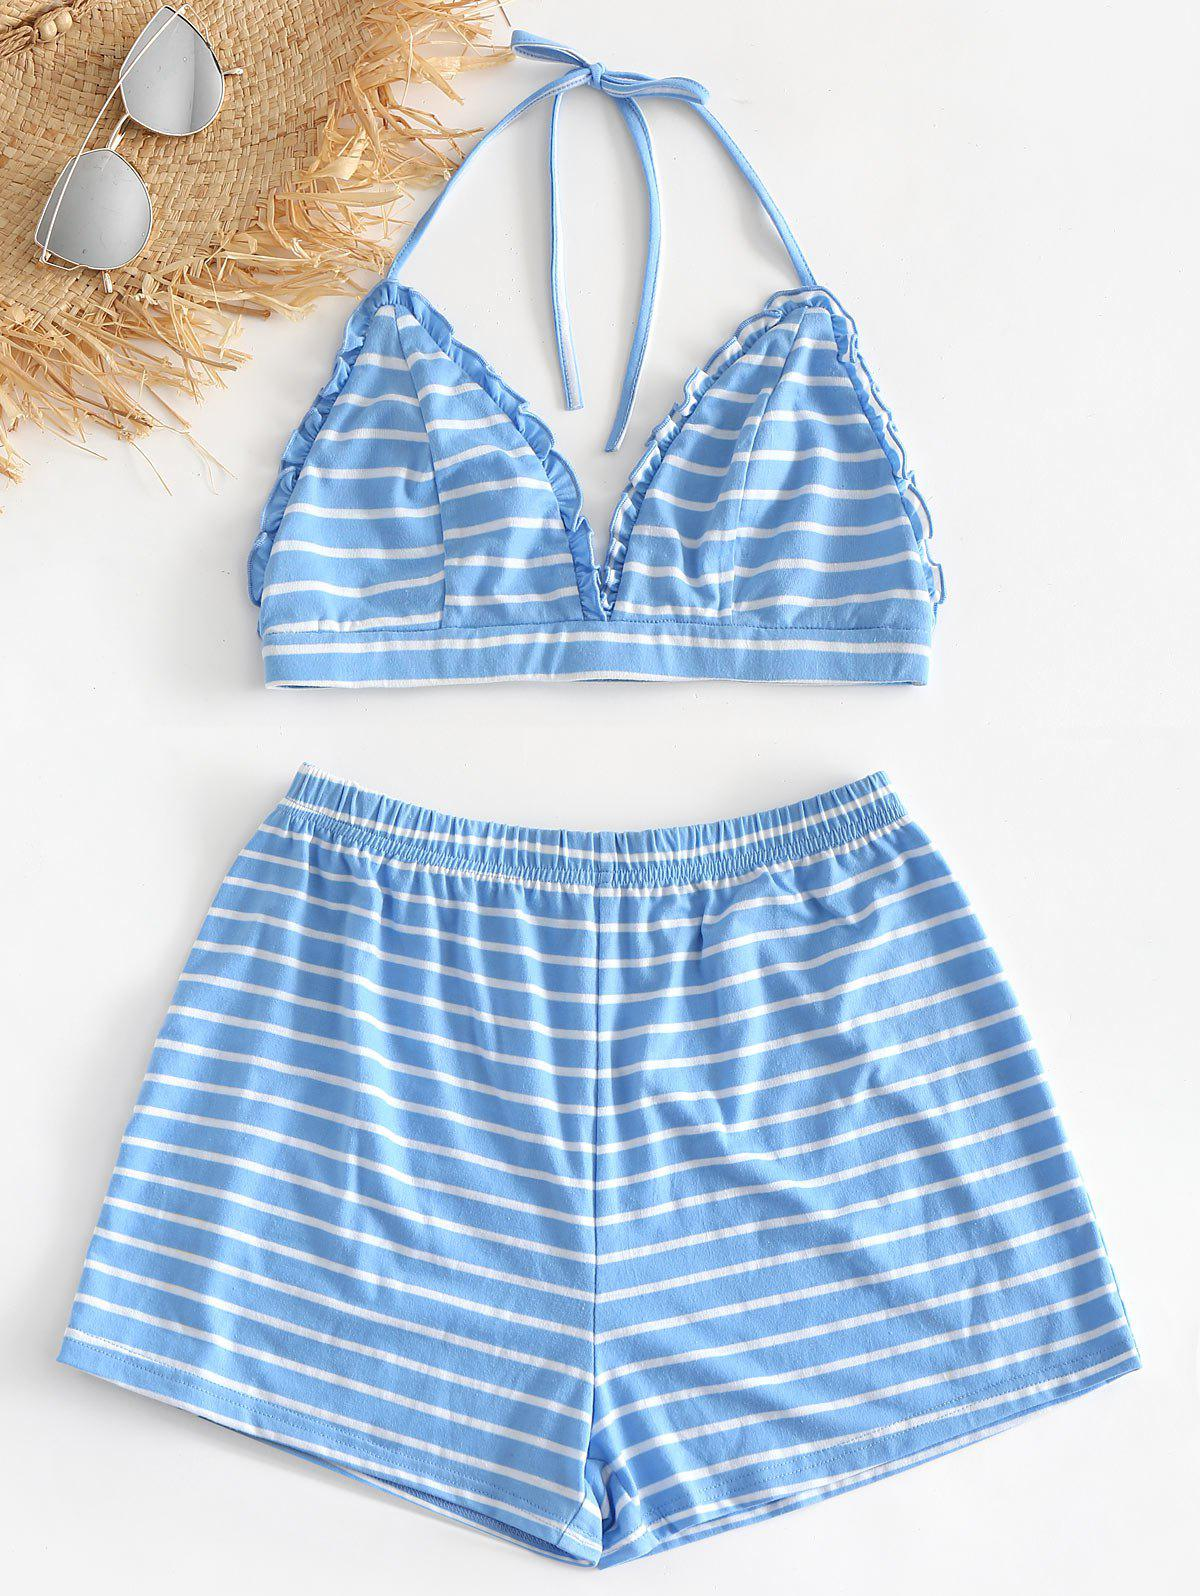 Striped Bralette Top and Shorts Pajama Set